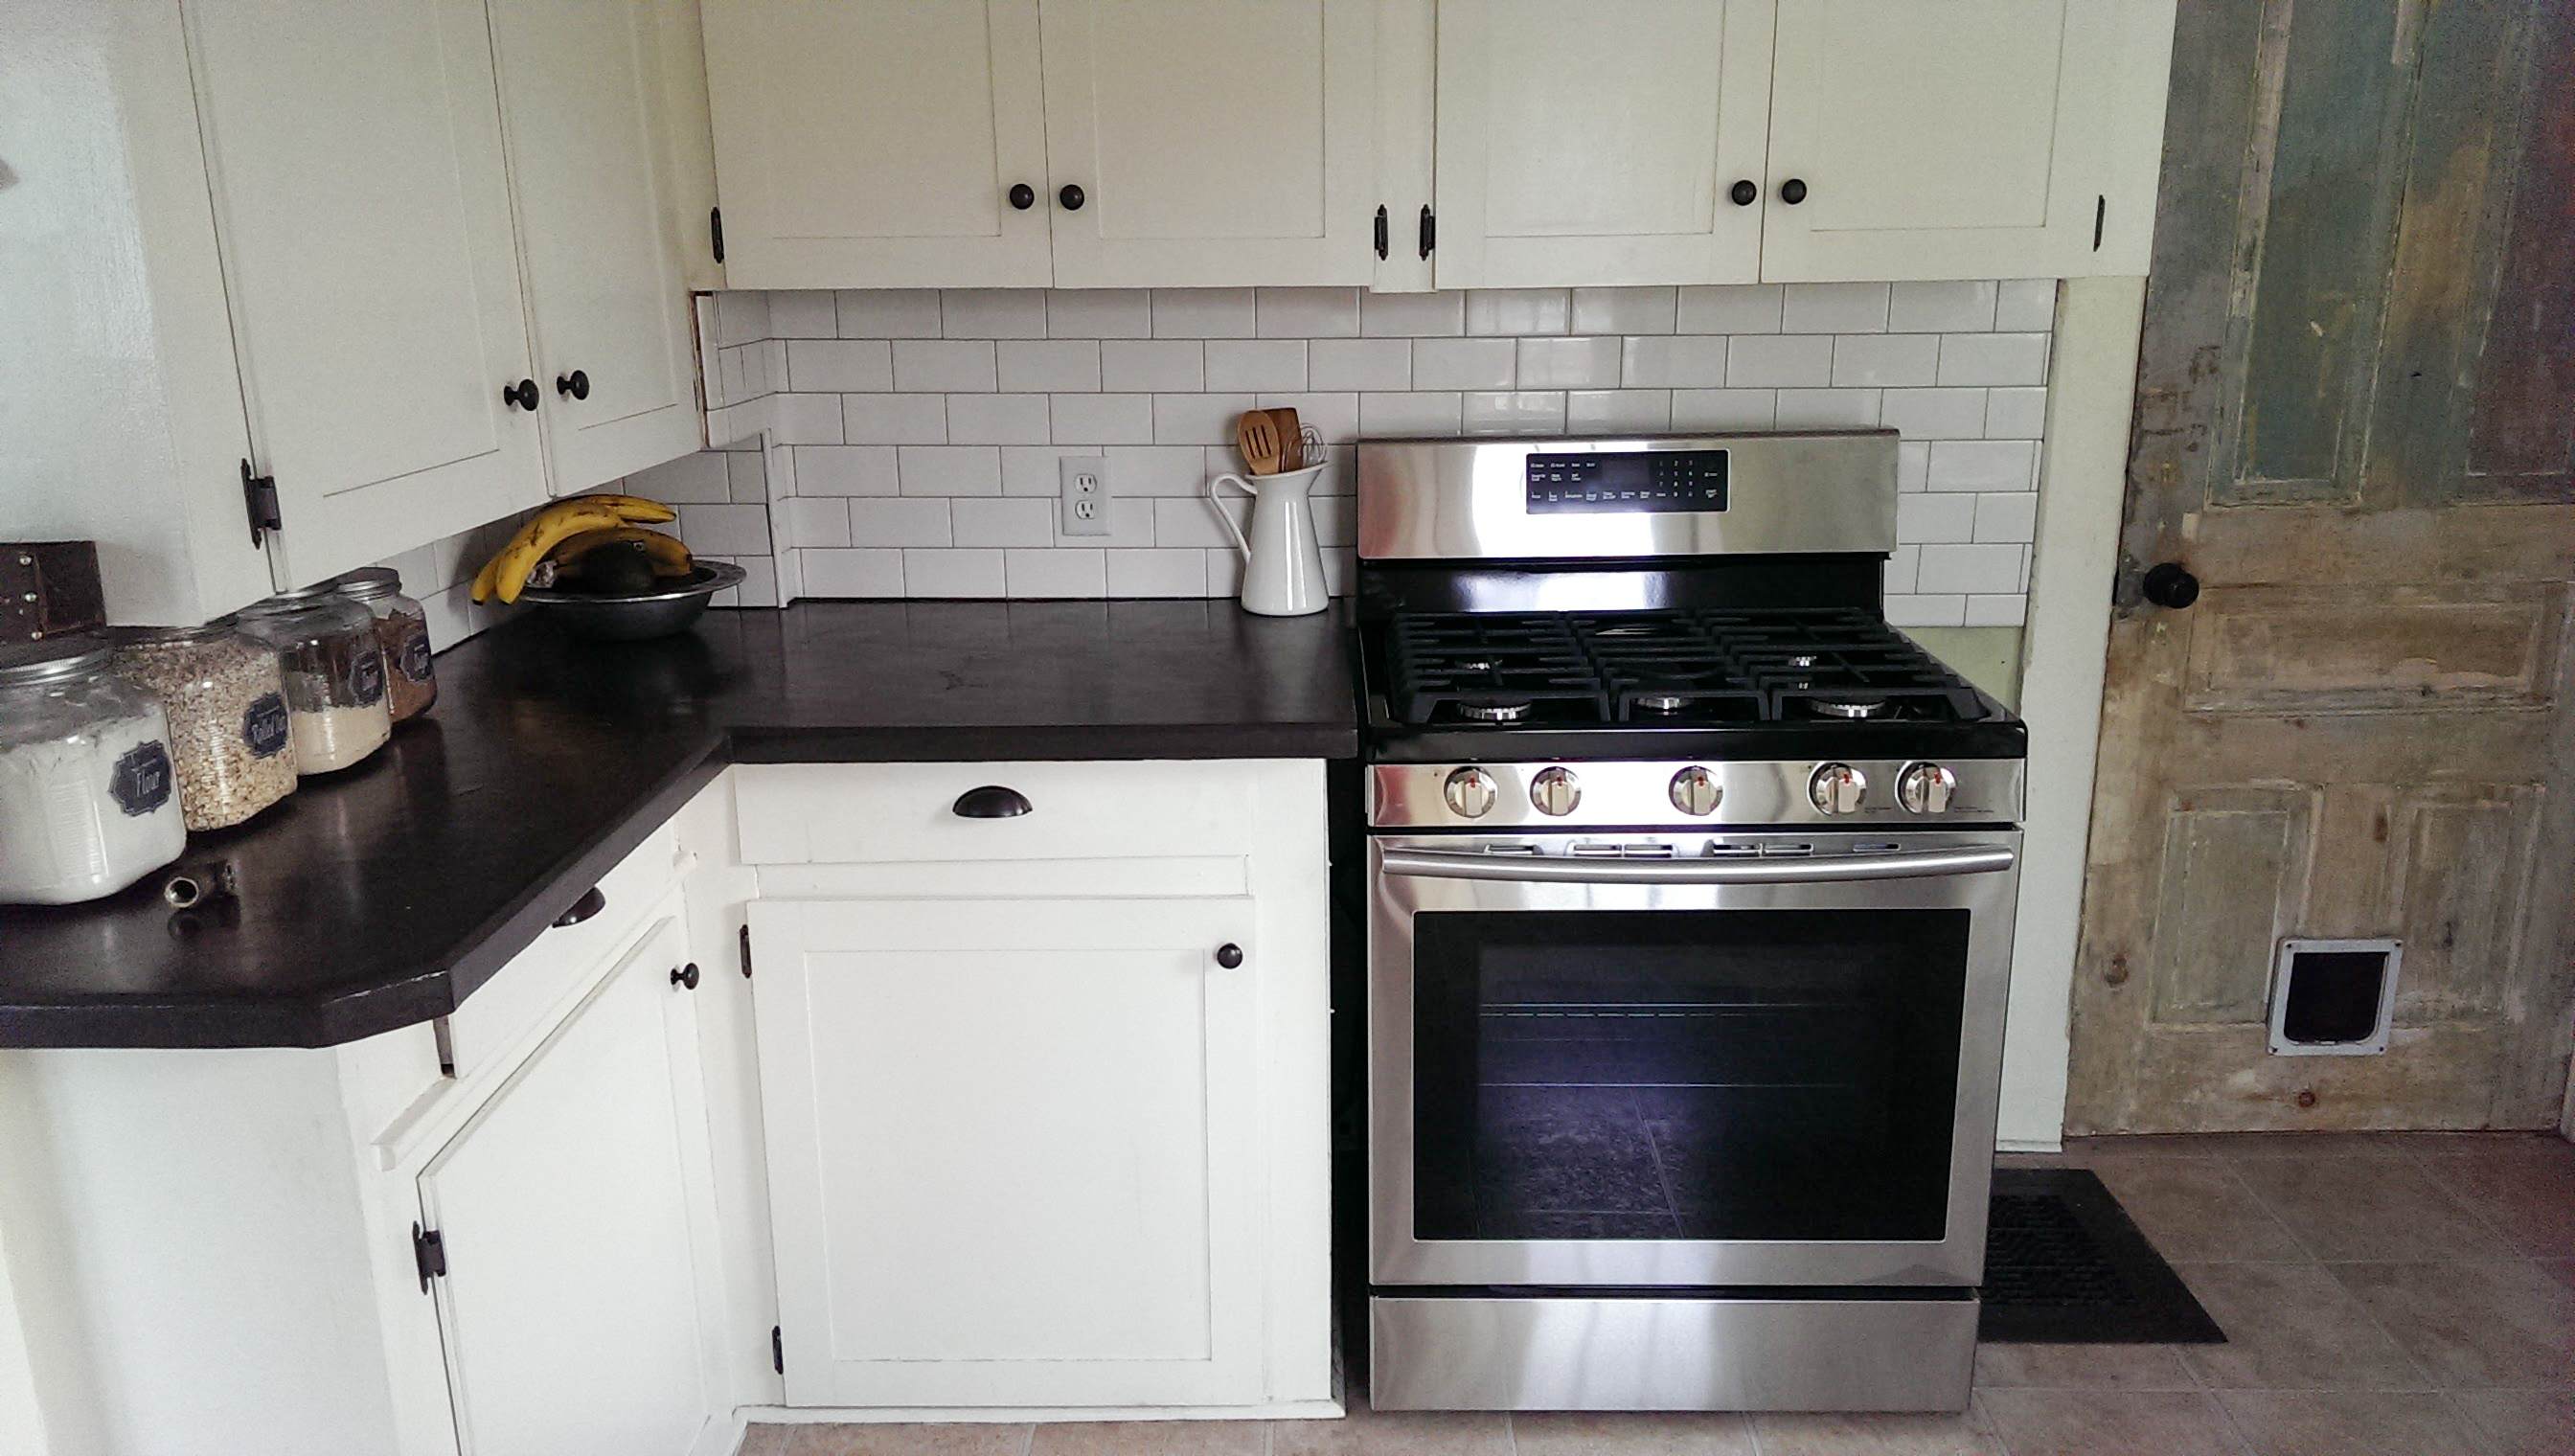 When We Moved Into This Old House, The Kitchen Was Cosmetically In The  Worst Shape Of Any Room. Even Our Home Inspector Said It Was Ugly! And He  Was Right.